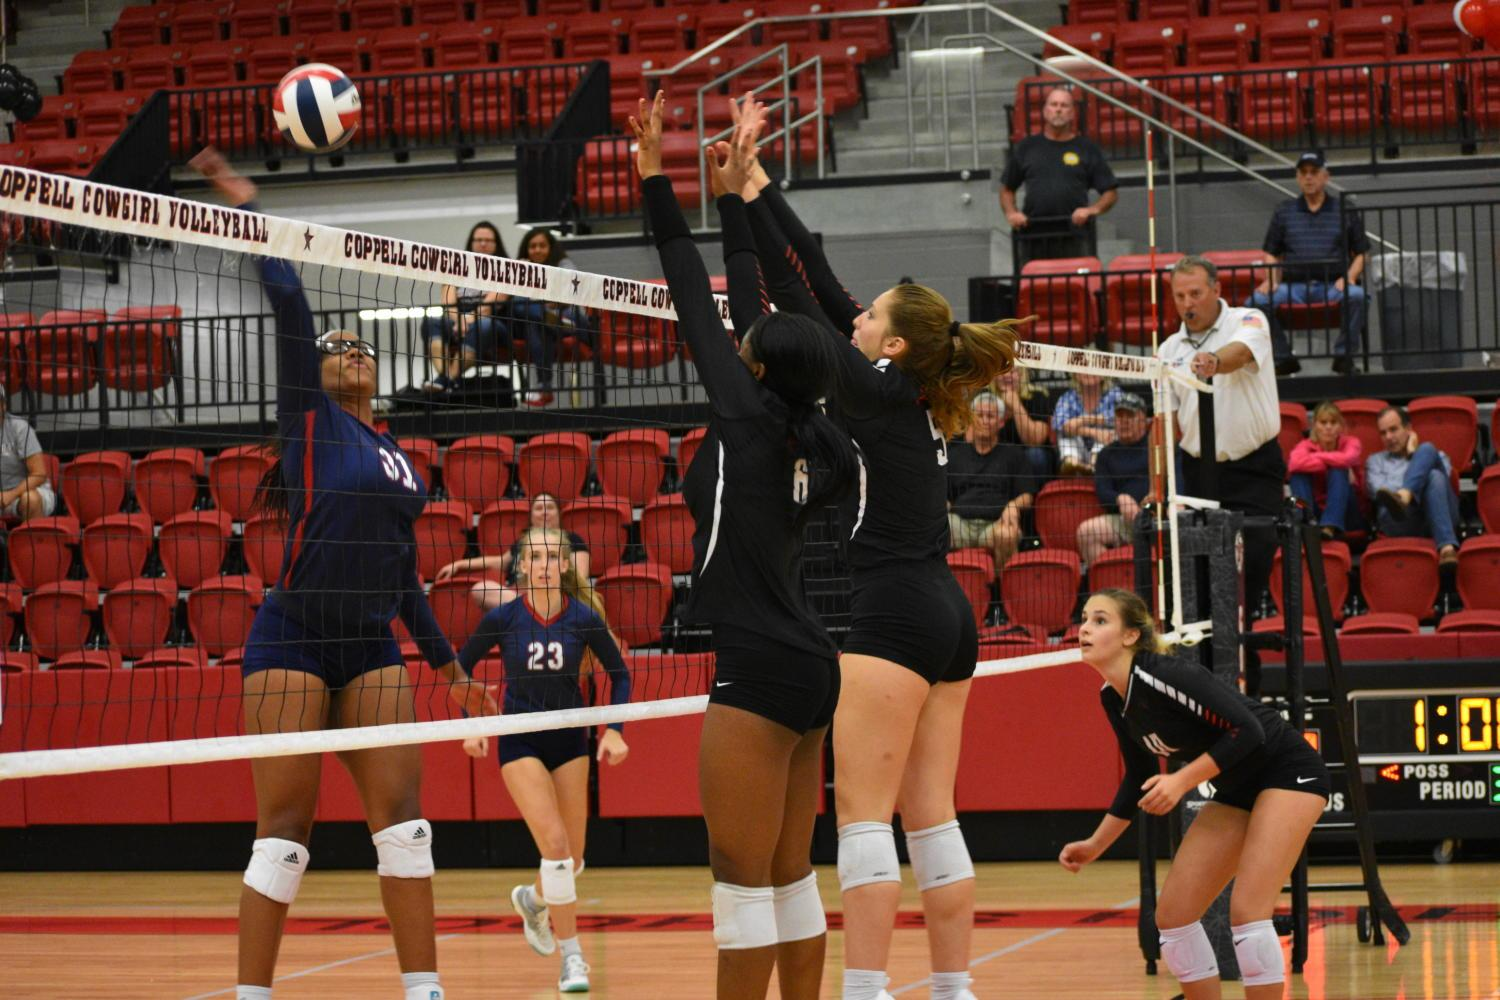 Coppell+High+School+junior+Amarachi+Osuji+and+freshman+Madison+Gilliland+jump+to+make+a+block+during+Friday+night%E2%80%99s+game+in+the+Arena.+The+Cowgirls+played+against+the+Allen+Eagles+and+ended+the+match+losing+straight+sets+%2827-29%2C+12-25%2C+20-25%29+against+the+Lady+Eagles.